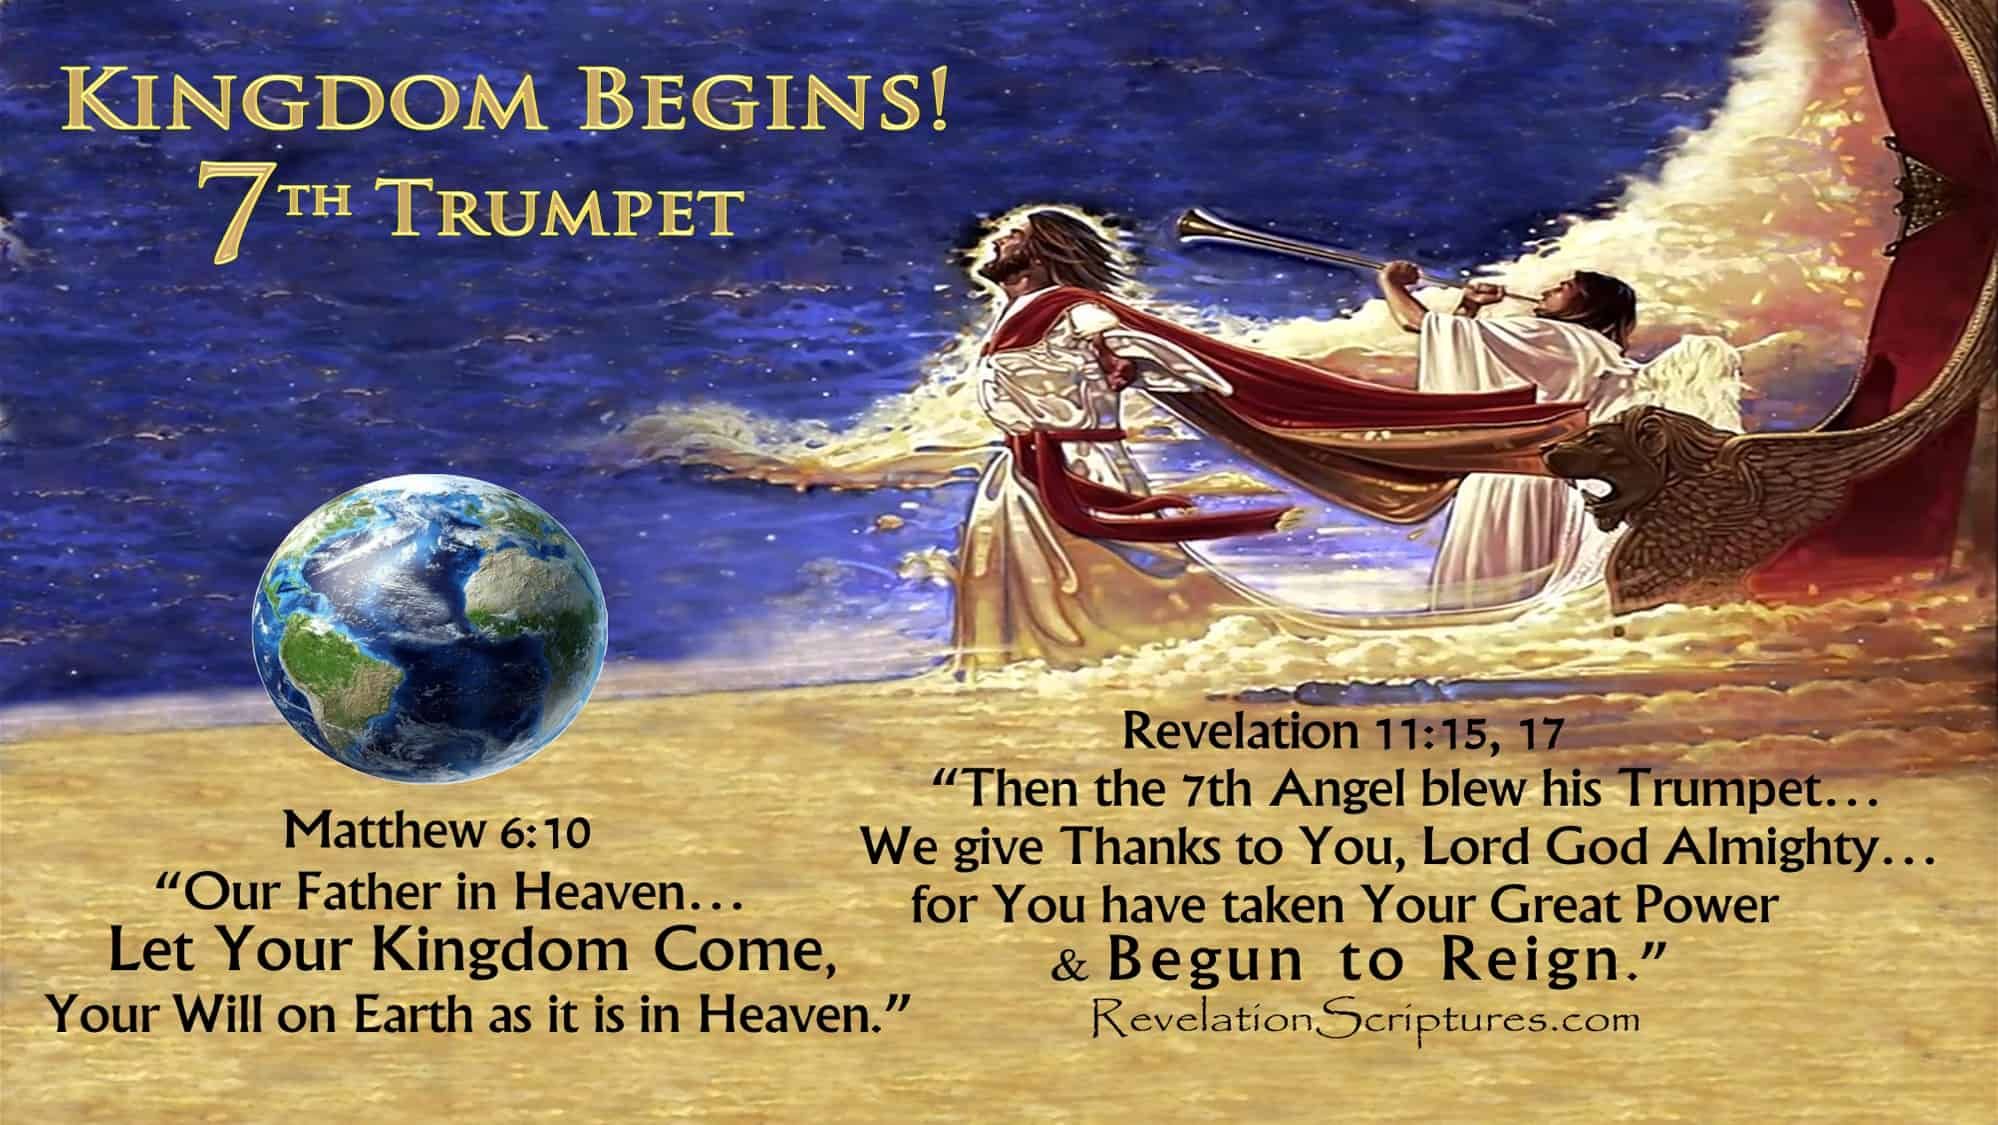 Feast of trumpets,yom teruah,rosh Hashanah,new moon,shofar,Hebrew,Israel,rapture,bible,revelation,Jesus,jubilee,old testament,heaven,day,symbol,jews,church,happy,logo,Israelites,fall,celebration,explained,sabbath,rest,lord,blast,shout,shouting,blowing trumpets,Leviticus 23,Fall Feast,appointed,time,moed,alarm,messianic,day of shouting,7 Trumpets,7 Trumpets in Revelation,7 Trumpets of Revelation,Seven Trumpets,Seven Trumpets Revelation,7 Angels given 7 Trumpets,7 Angels blow 7 Trumpets,Natzarim,2nd Coming,Second Coming,Numbers 29,Fulfillment in Revelation,Fulfillment,Feast of Trumpets Revelation,Yom teruah Revelation,Future Fulfillment in Revelation,Book of Revelation,Apocalypse,Seventh Trumpet,seventh Trumpet of revelation,God's Wrath,end world,apocalypse,7th Trumpet,3rd woe,Trumpet 7,Third Woe,God's Temple,Heaven,Ark,Ark of the Covenant,Earthquake,Great Hail,Hail,Heavy Hail,Begun to Reign,Nations Angry,Wrath,Wrath has come,Reward,Judg Dead,time to reward,time to judge the dead,Book of Revelation,Revelation Chapter 11,Apocalypse,scriptural interpretation,biblical interpretation,food in due season,kingdom of world,kingdom of Christ,kingdom,birth of Kingdom,start of kingdom,destroy those ruining the earth,destroy the destroyers of the earth,7 bowls of Wrath,7 vials of Wrath,day of wrath,day of vengeance,day of the lord,revelation,saints,prophets,great and small,those who fear your name